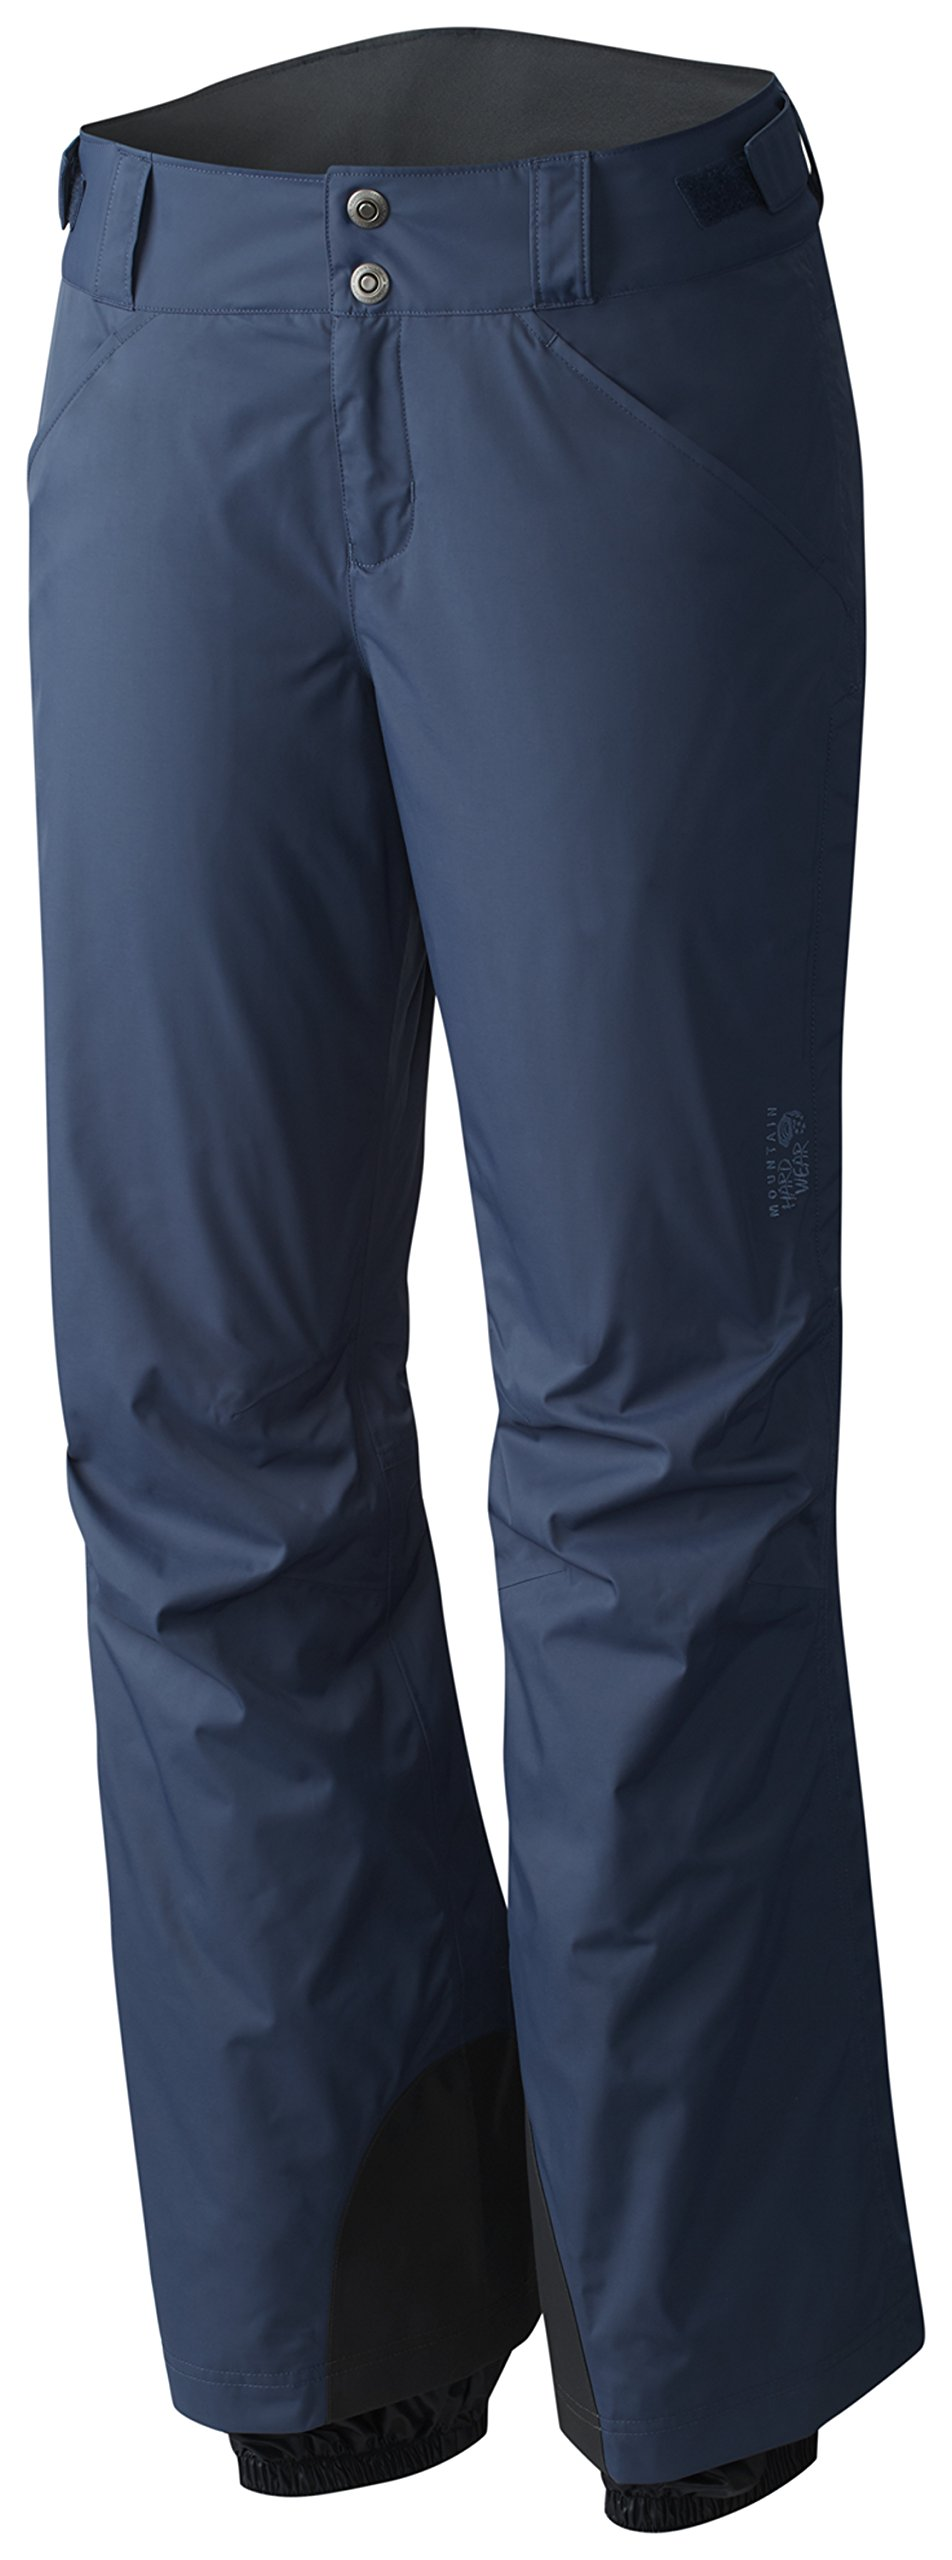 Mountain Hardwear Returnia Insulated Pant - Women's Zinc Medium